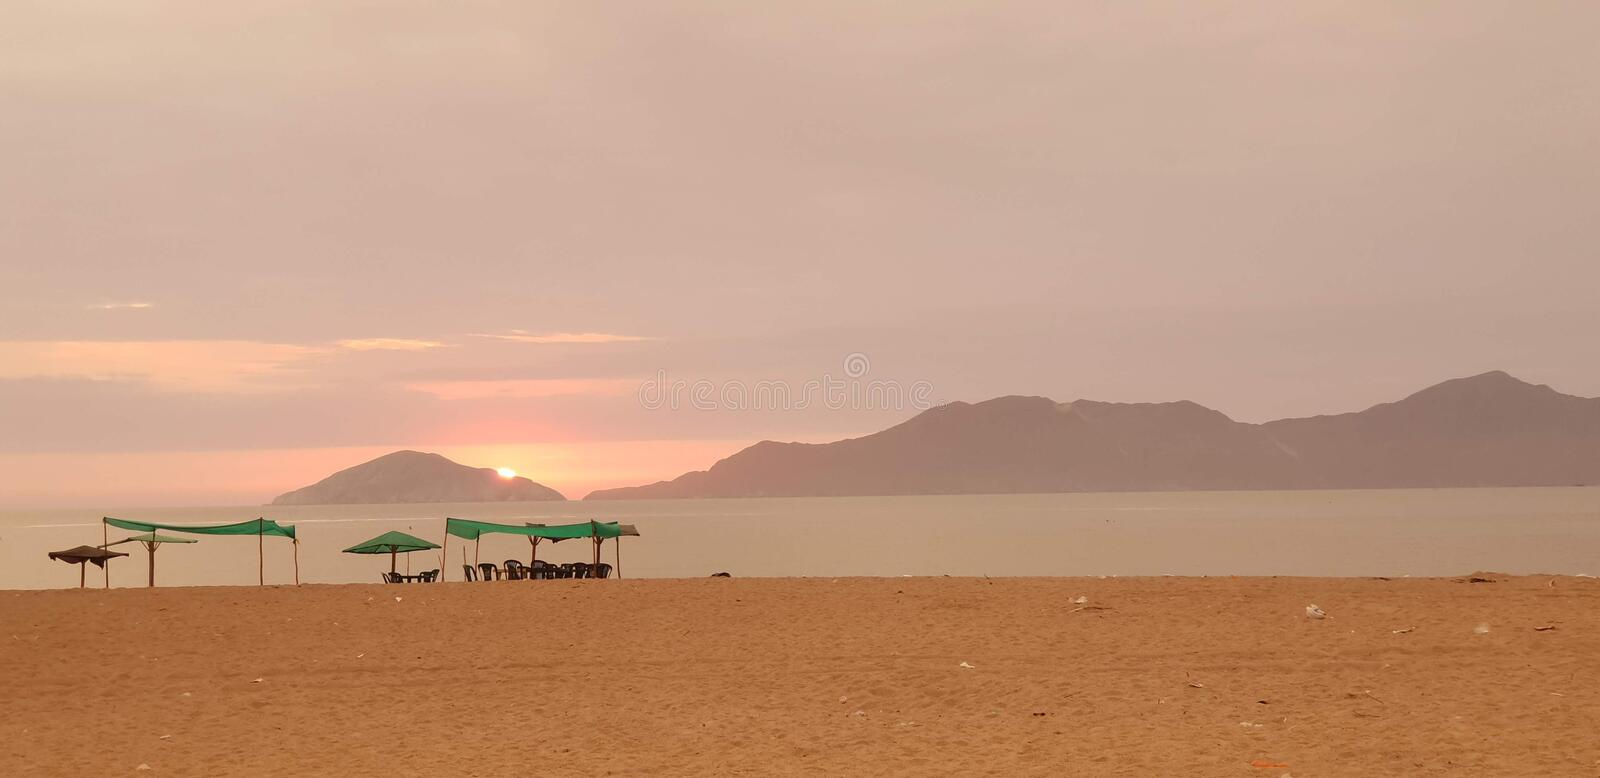 Sunset and tent in Besique Beach 2. Tent and food table in Sunset solitaire beach - Besique, Peru. Some mountains in the background royalty free stock photography